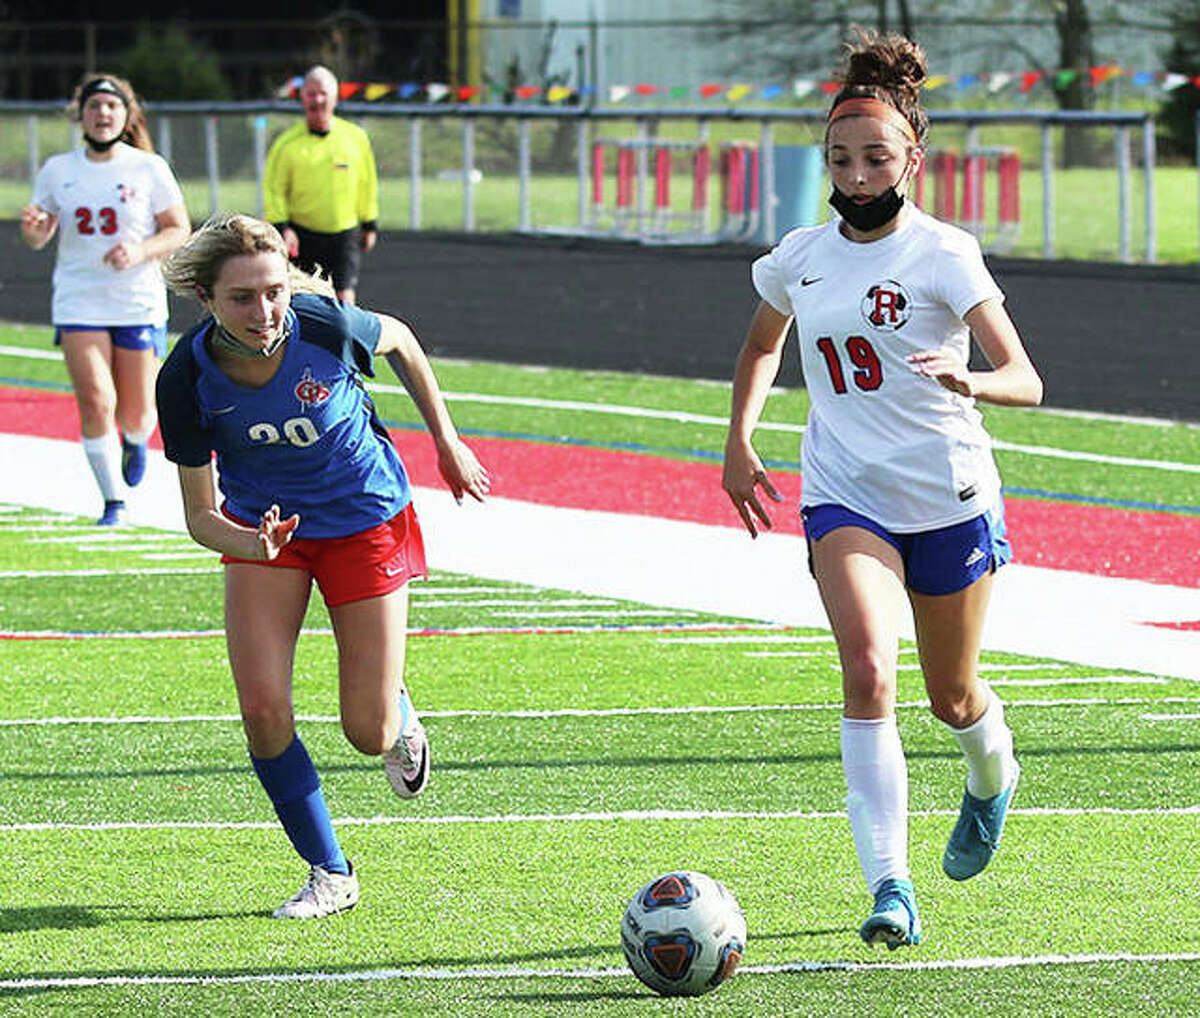 Jillian Slayton of Carlinville, left, eyes the ball as Roxana's Kendall Kamp dribbles in South Central Conference action earlier this season at Carlinville.